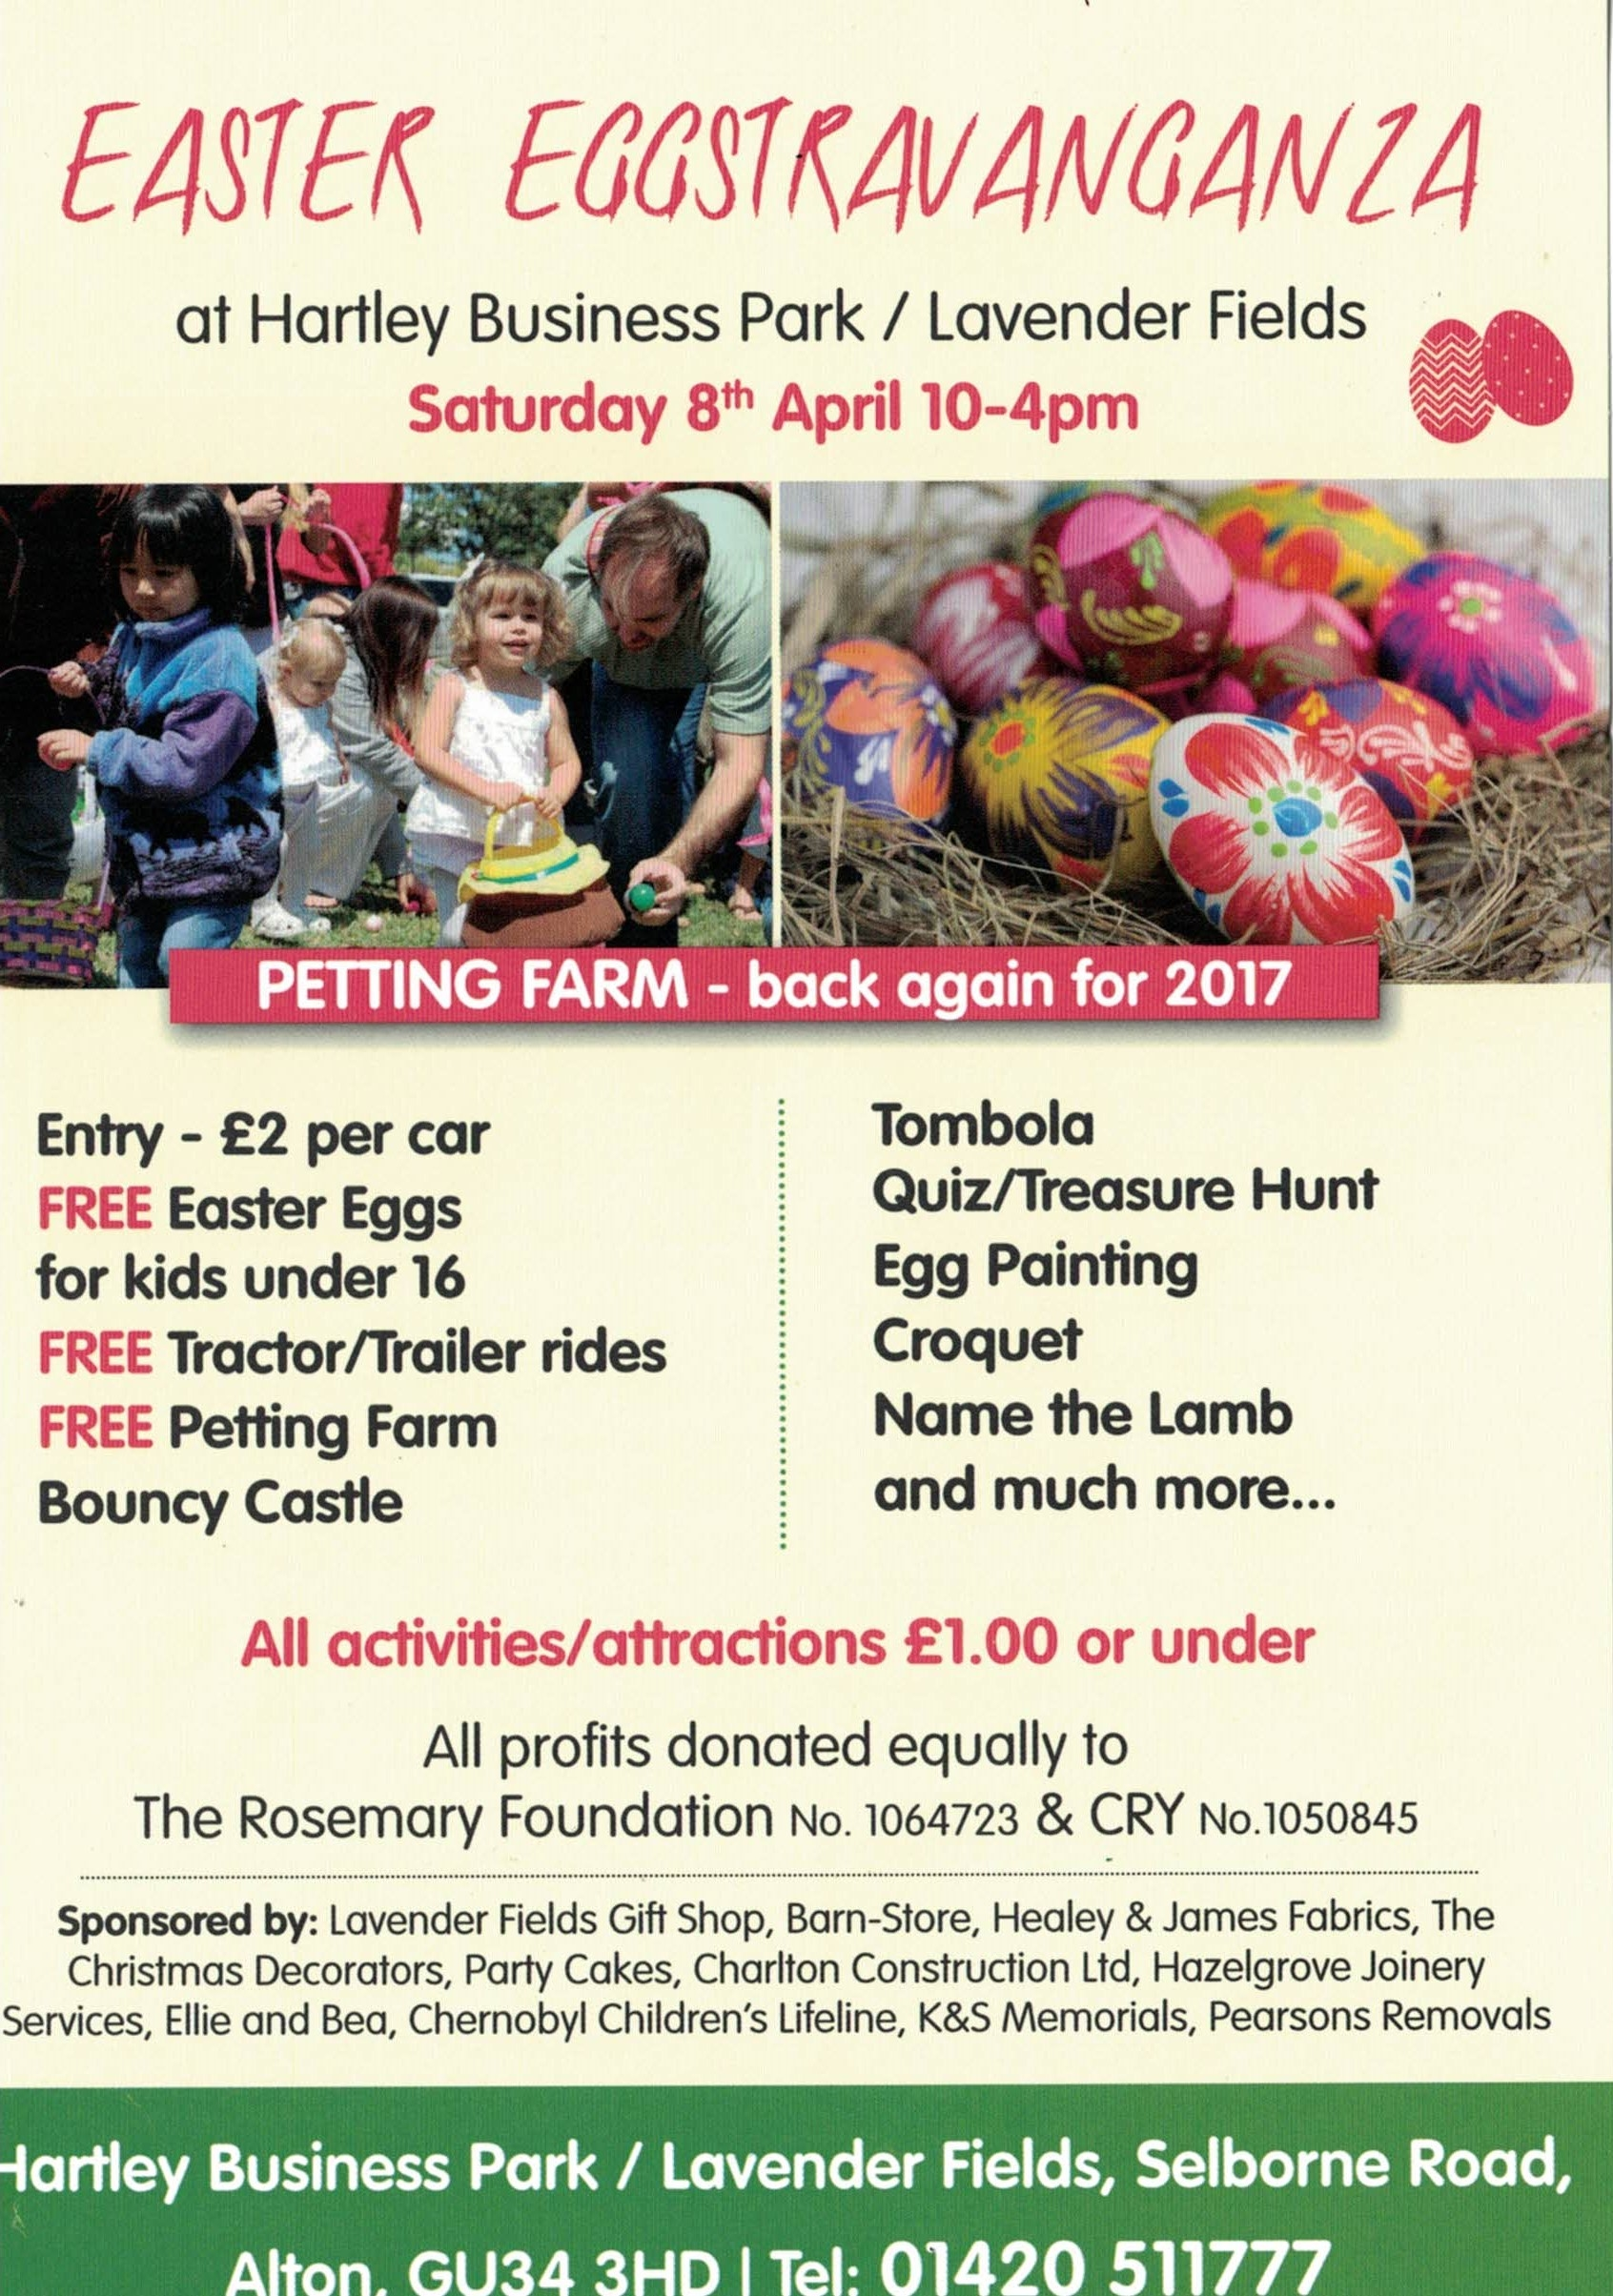 Easter Eggstravaganza at Hartley Park Farm / Lavender Fields - The Rosemary  Foundation